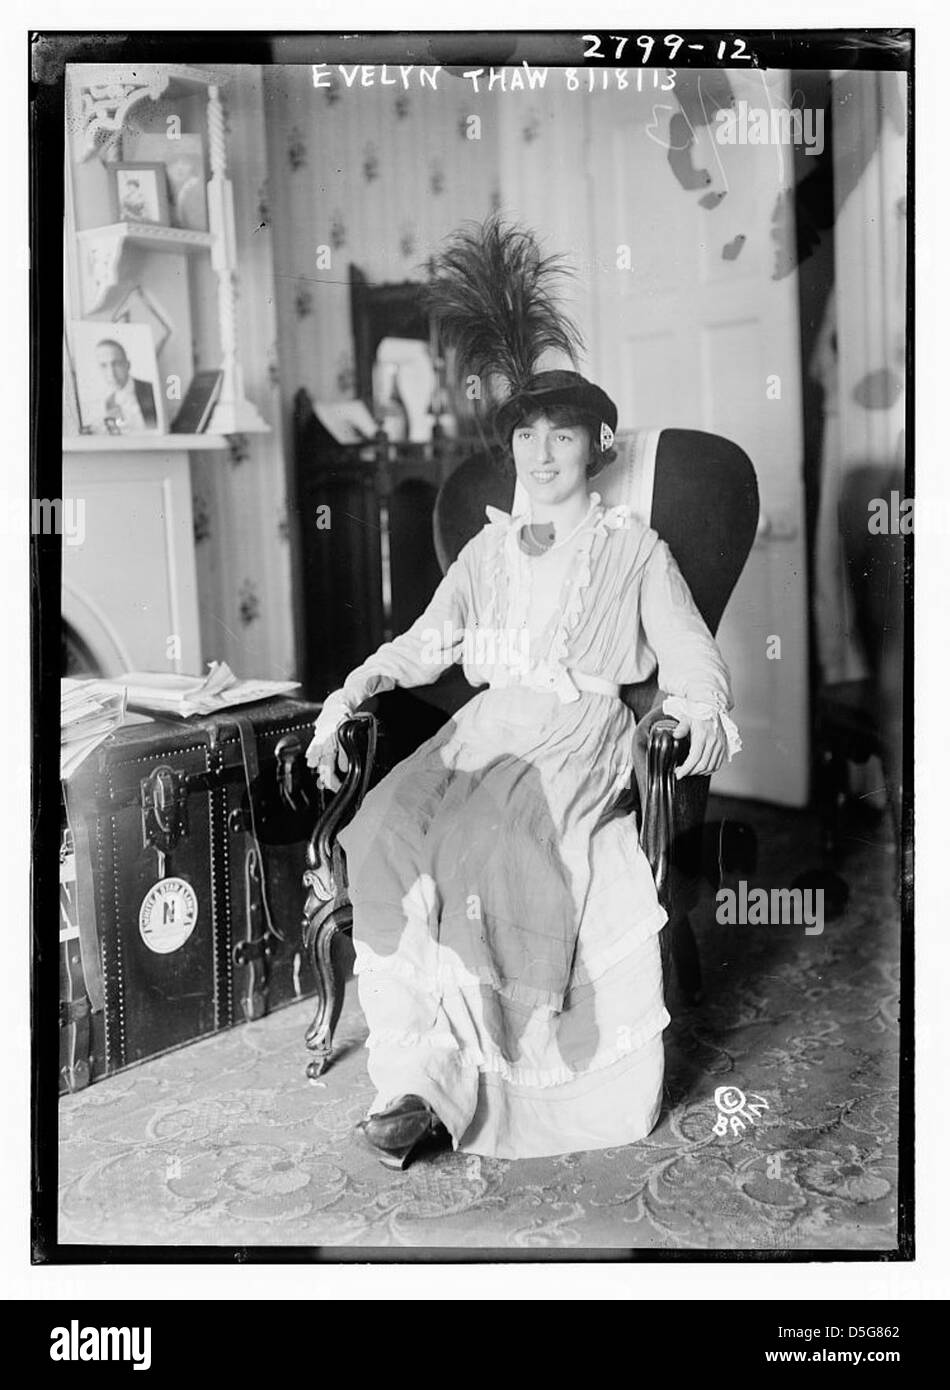 Evelyn Thaw (LOC) - Stock Image